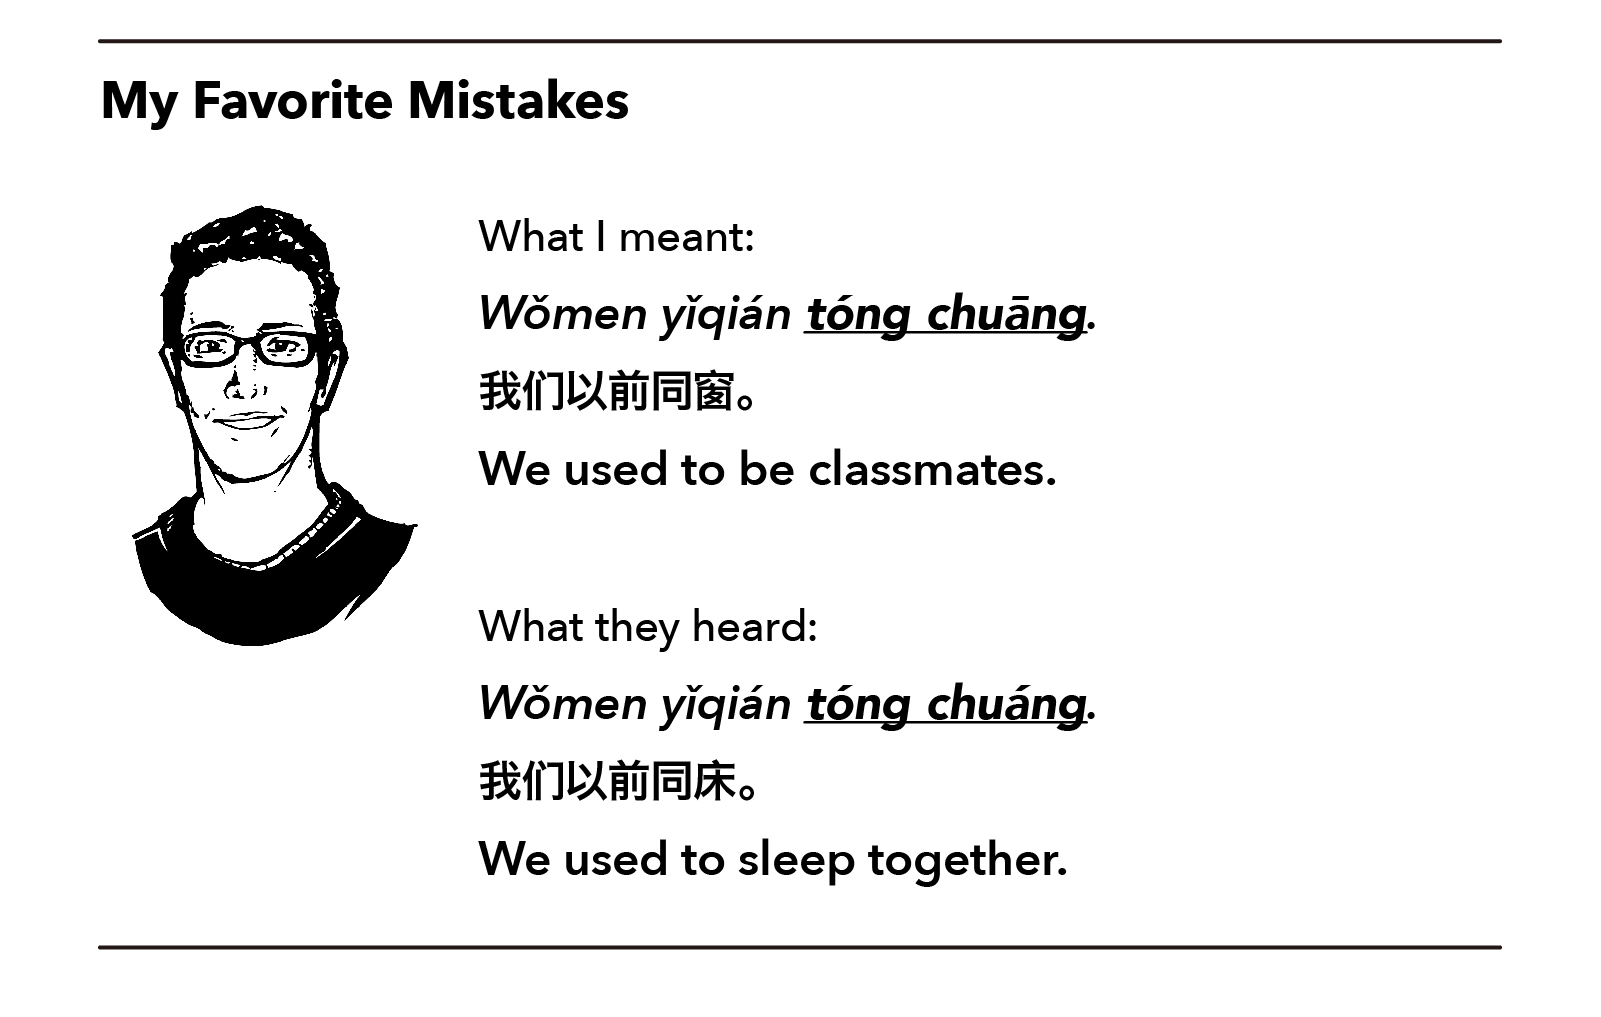 China Simplified: Chinese language mistake